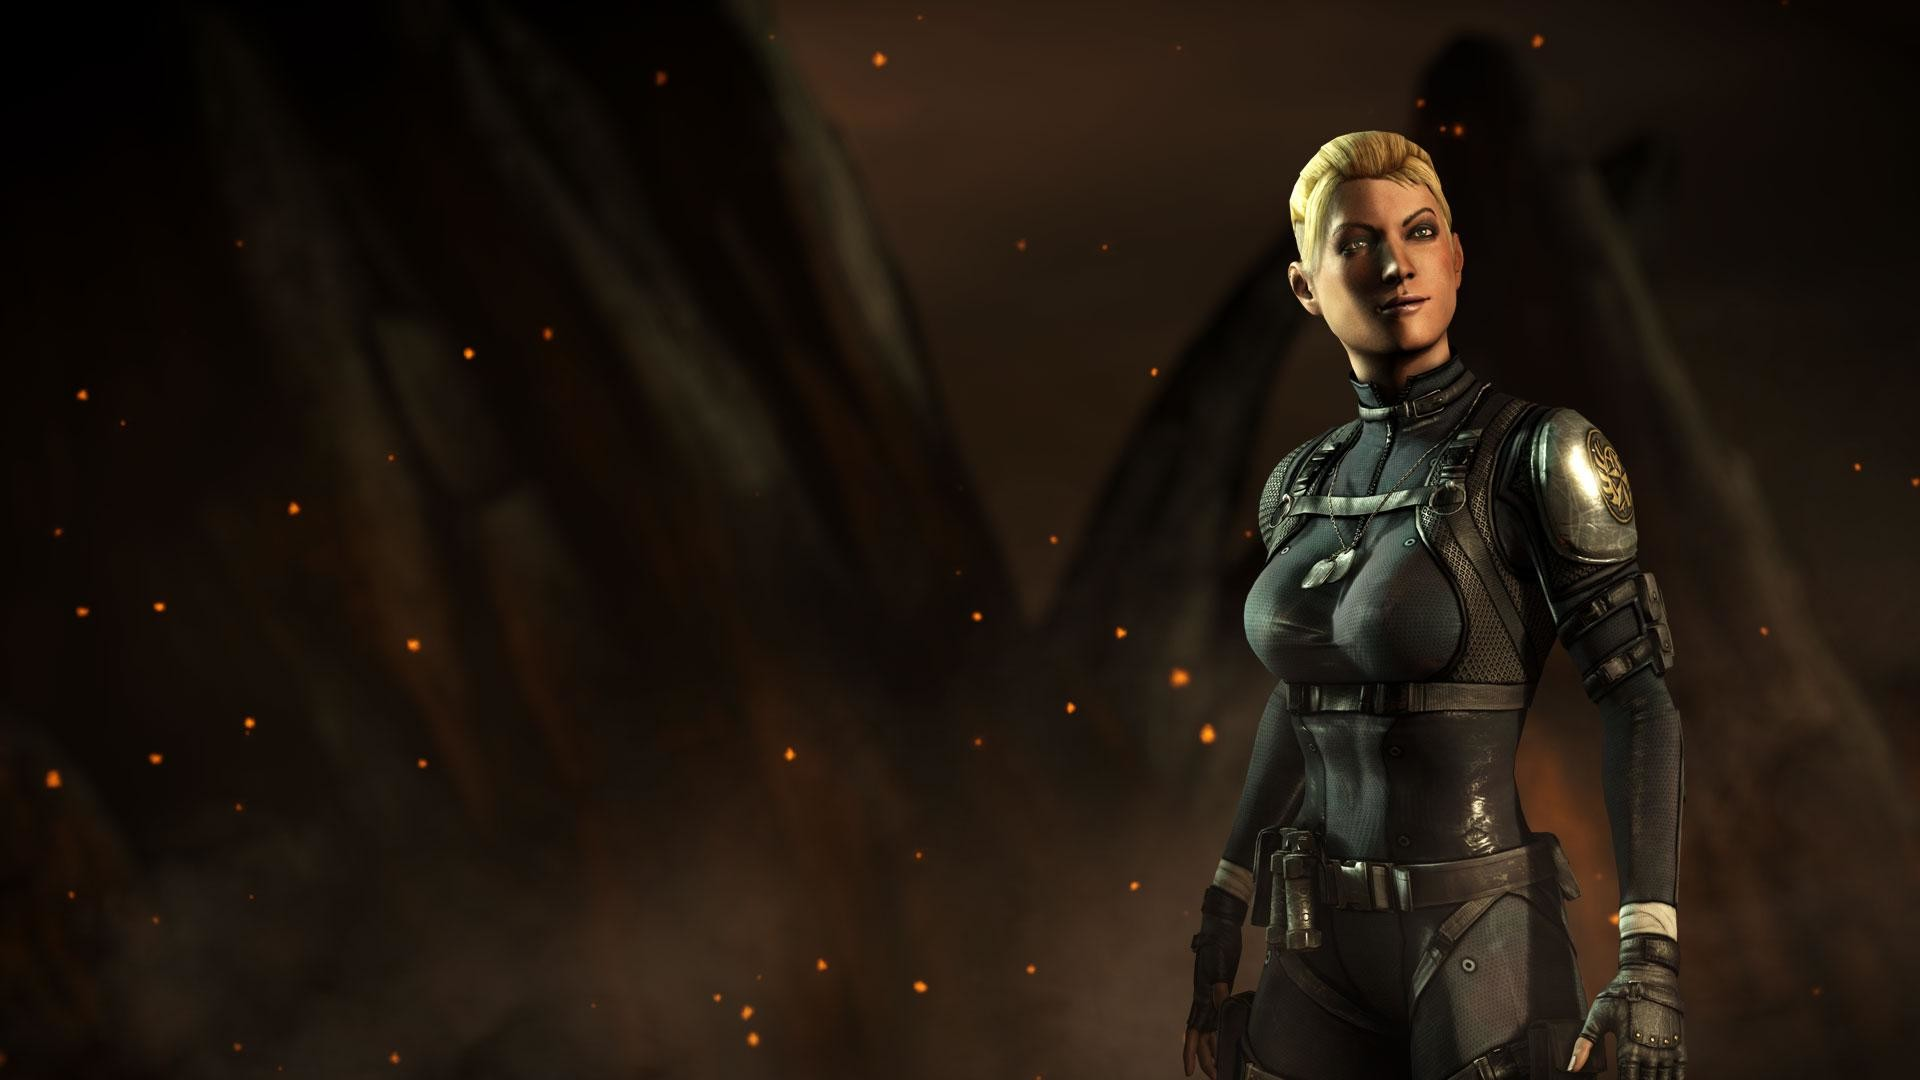 Cassie Cage Mortal Kombat X Characters Wallpapers HD